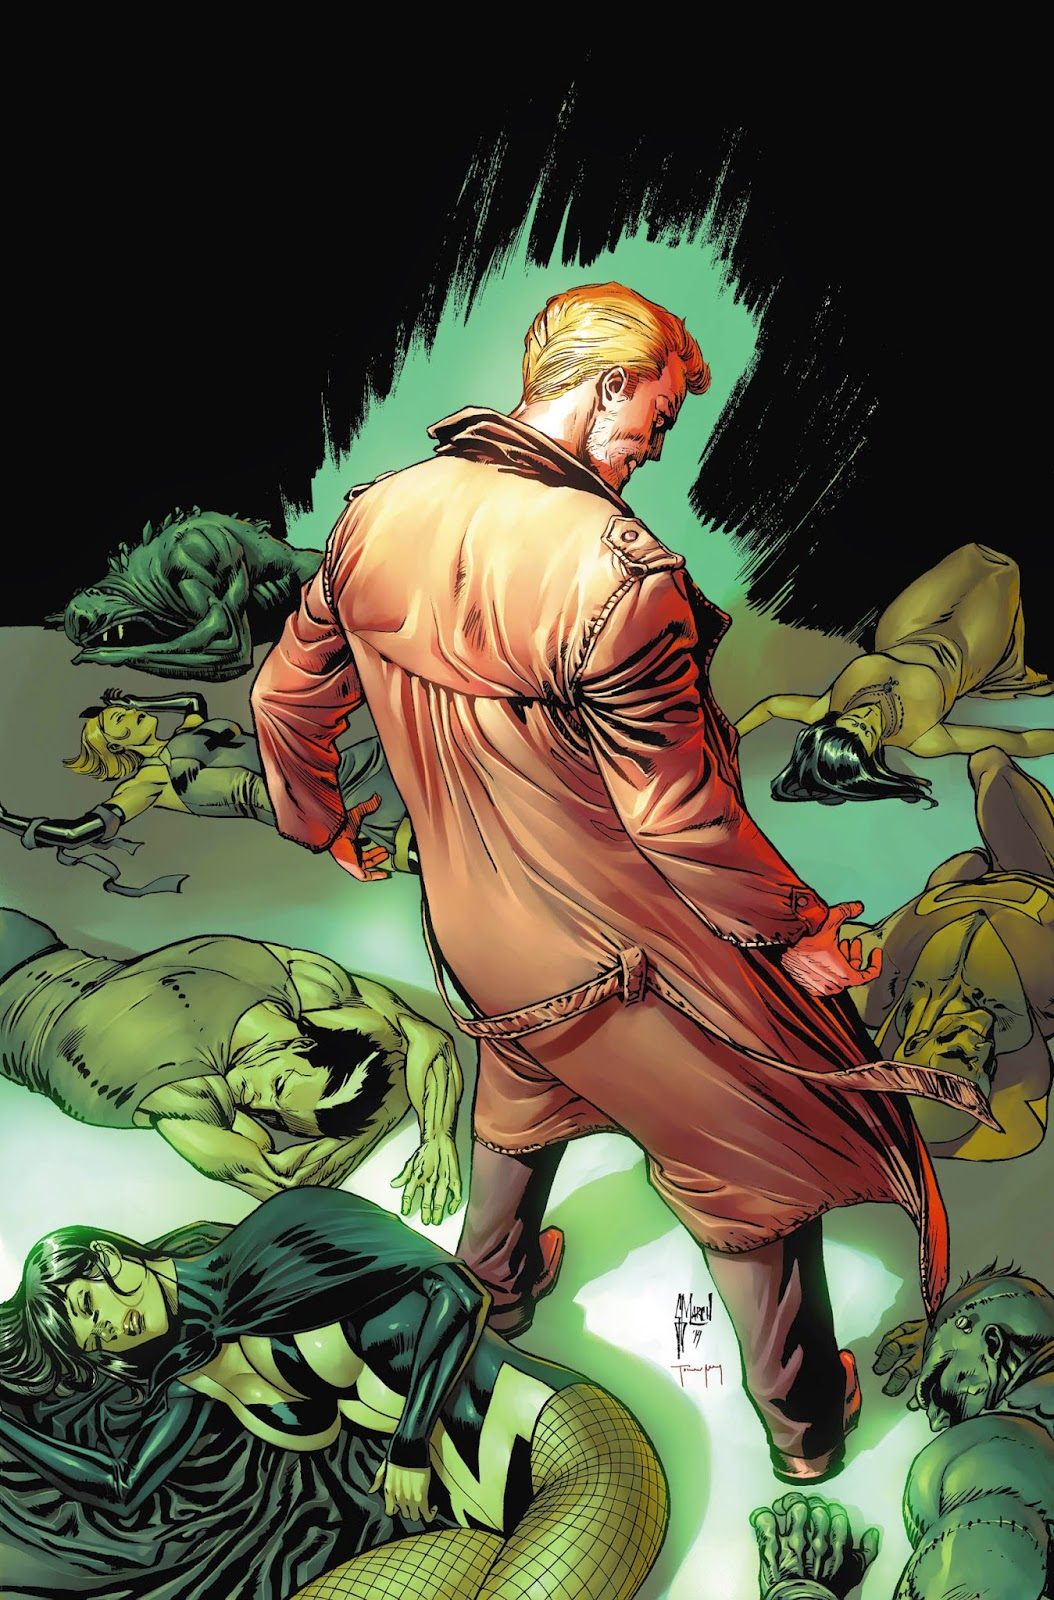 JUSTICE LEAGUE DARK 40 cover progress by Guillem March